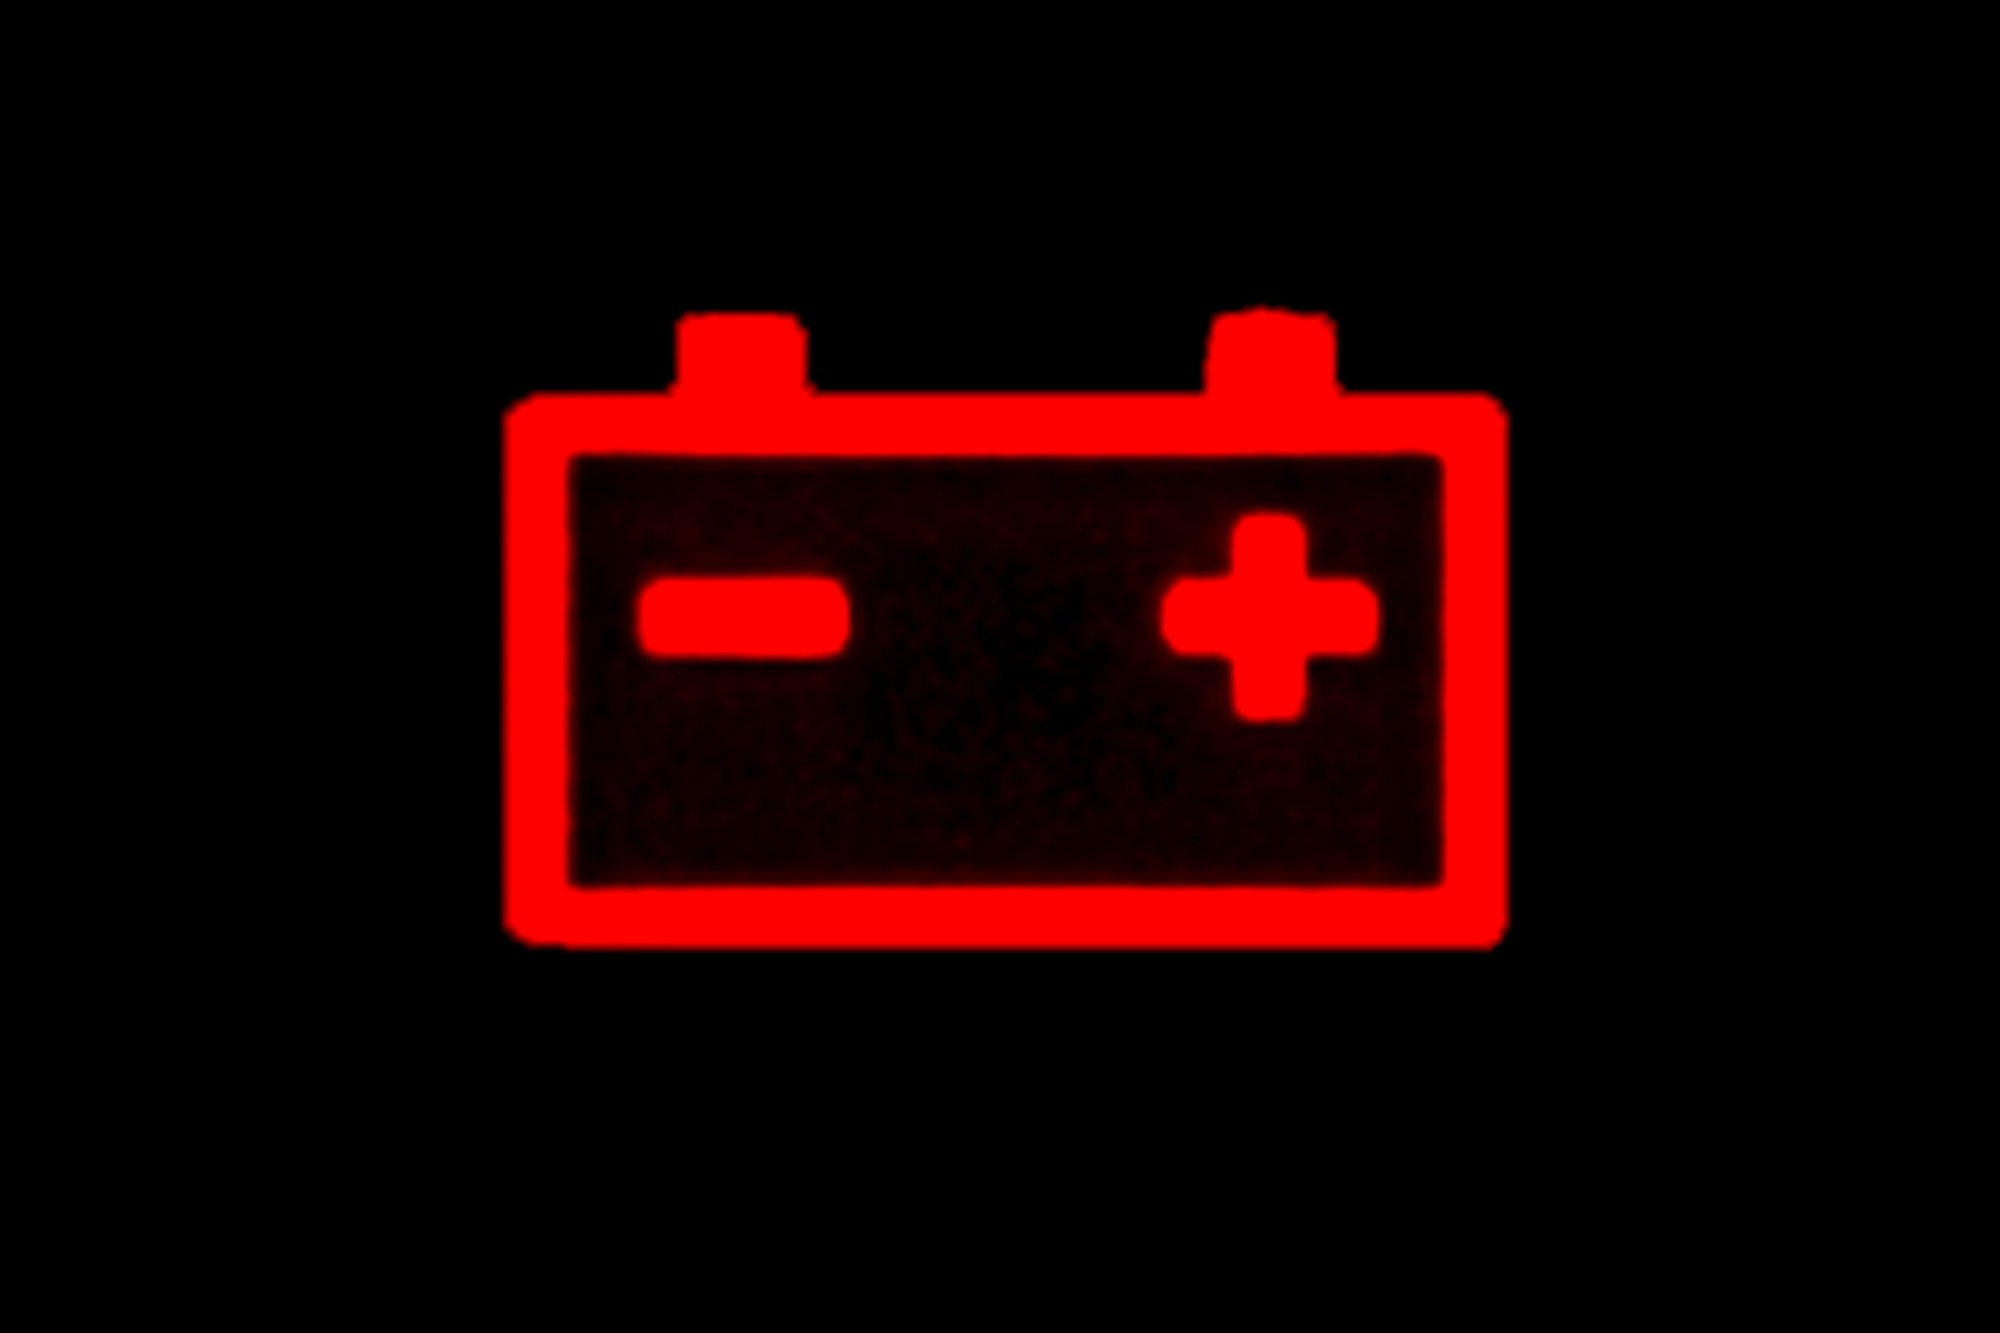 hight resolution of this symbol typically shows an image of a car battery with a plus and minus sign on it when this symbol lights up it indicates that there is a problem